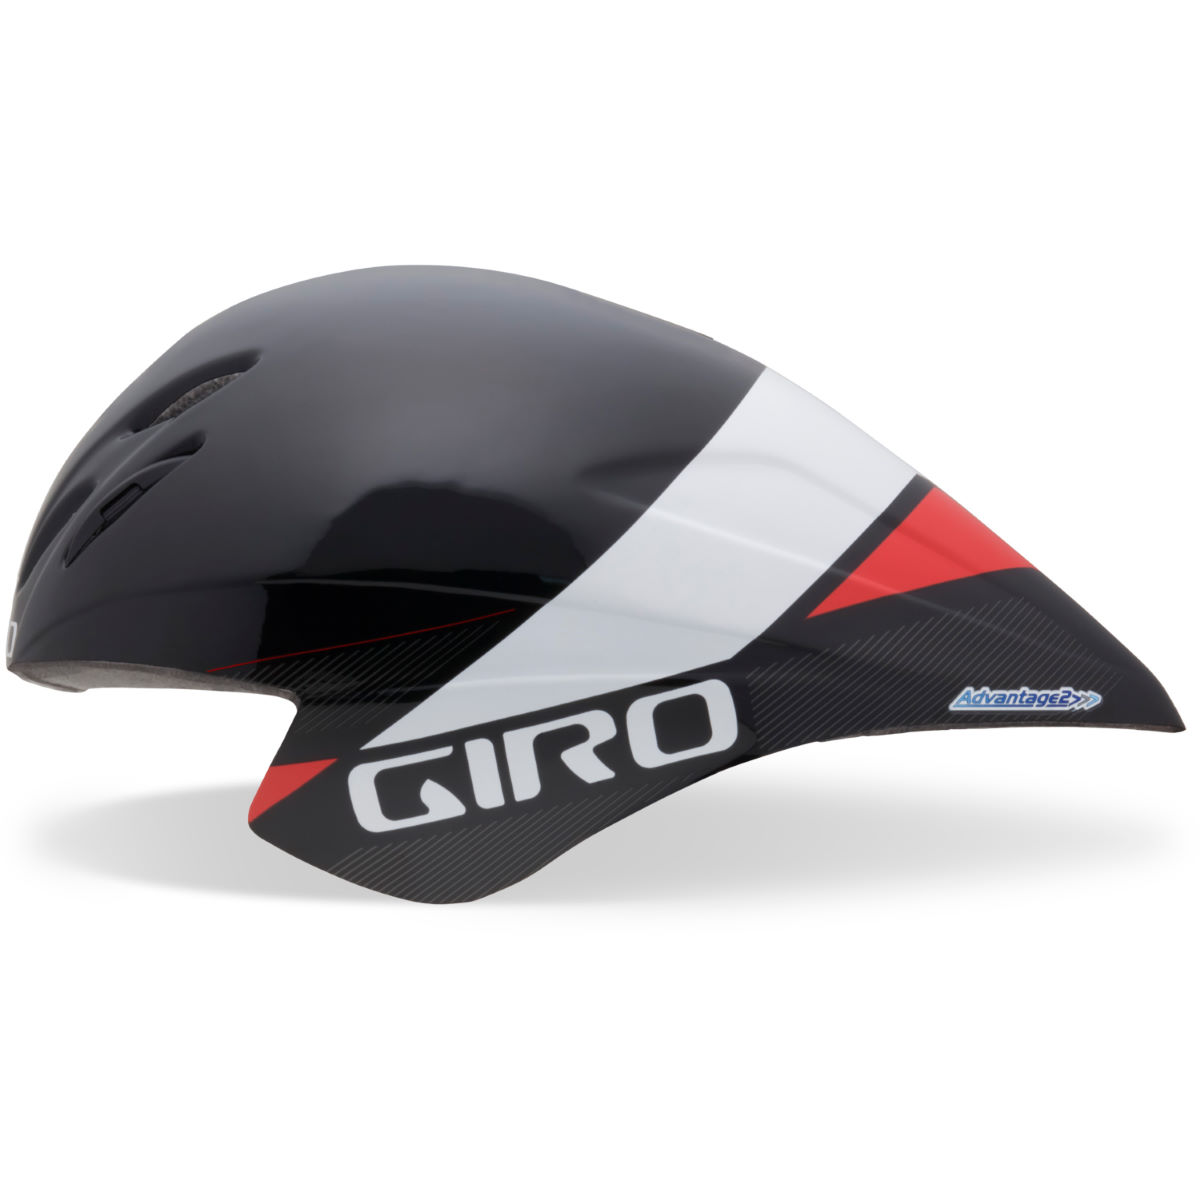 Casque de contre-la-montre Giro Advantage (2015) - Small 51-55cm Black/White/Red Casques de route